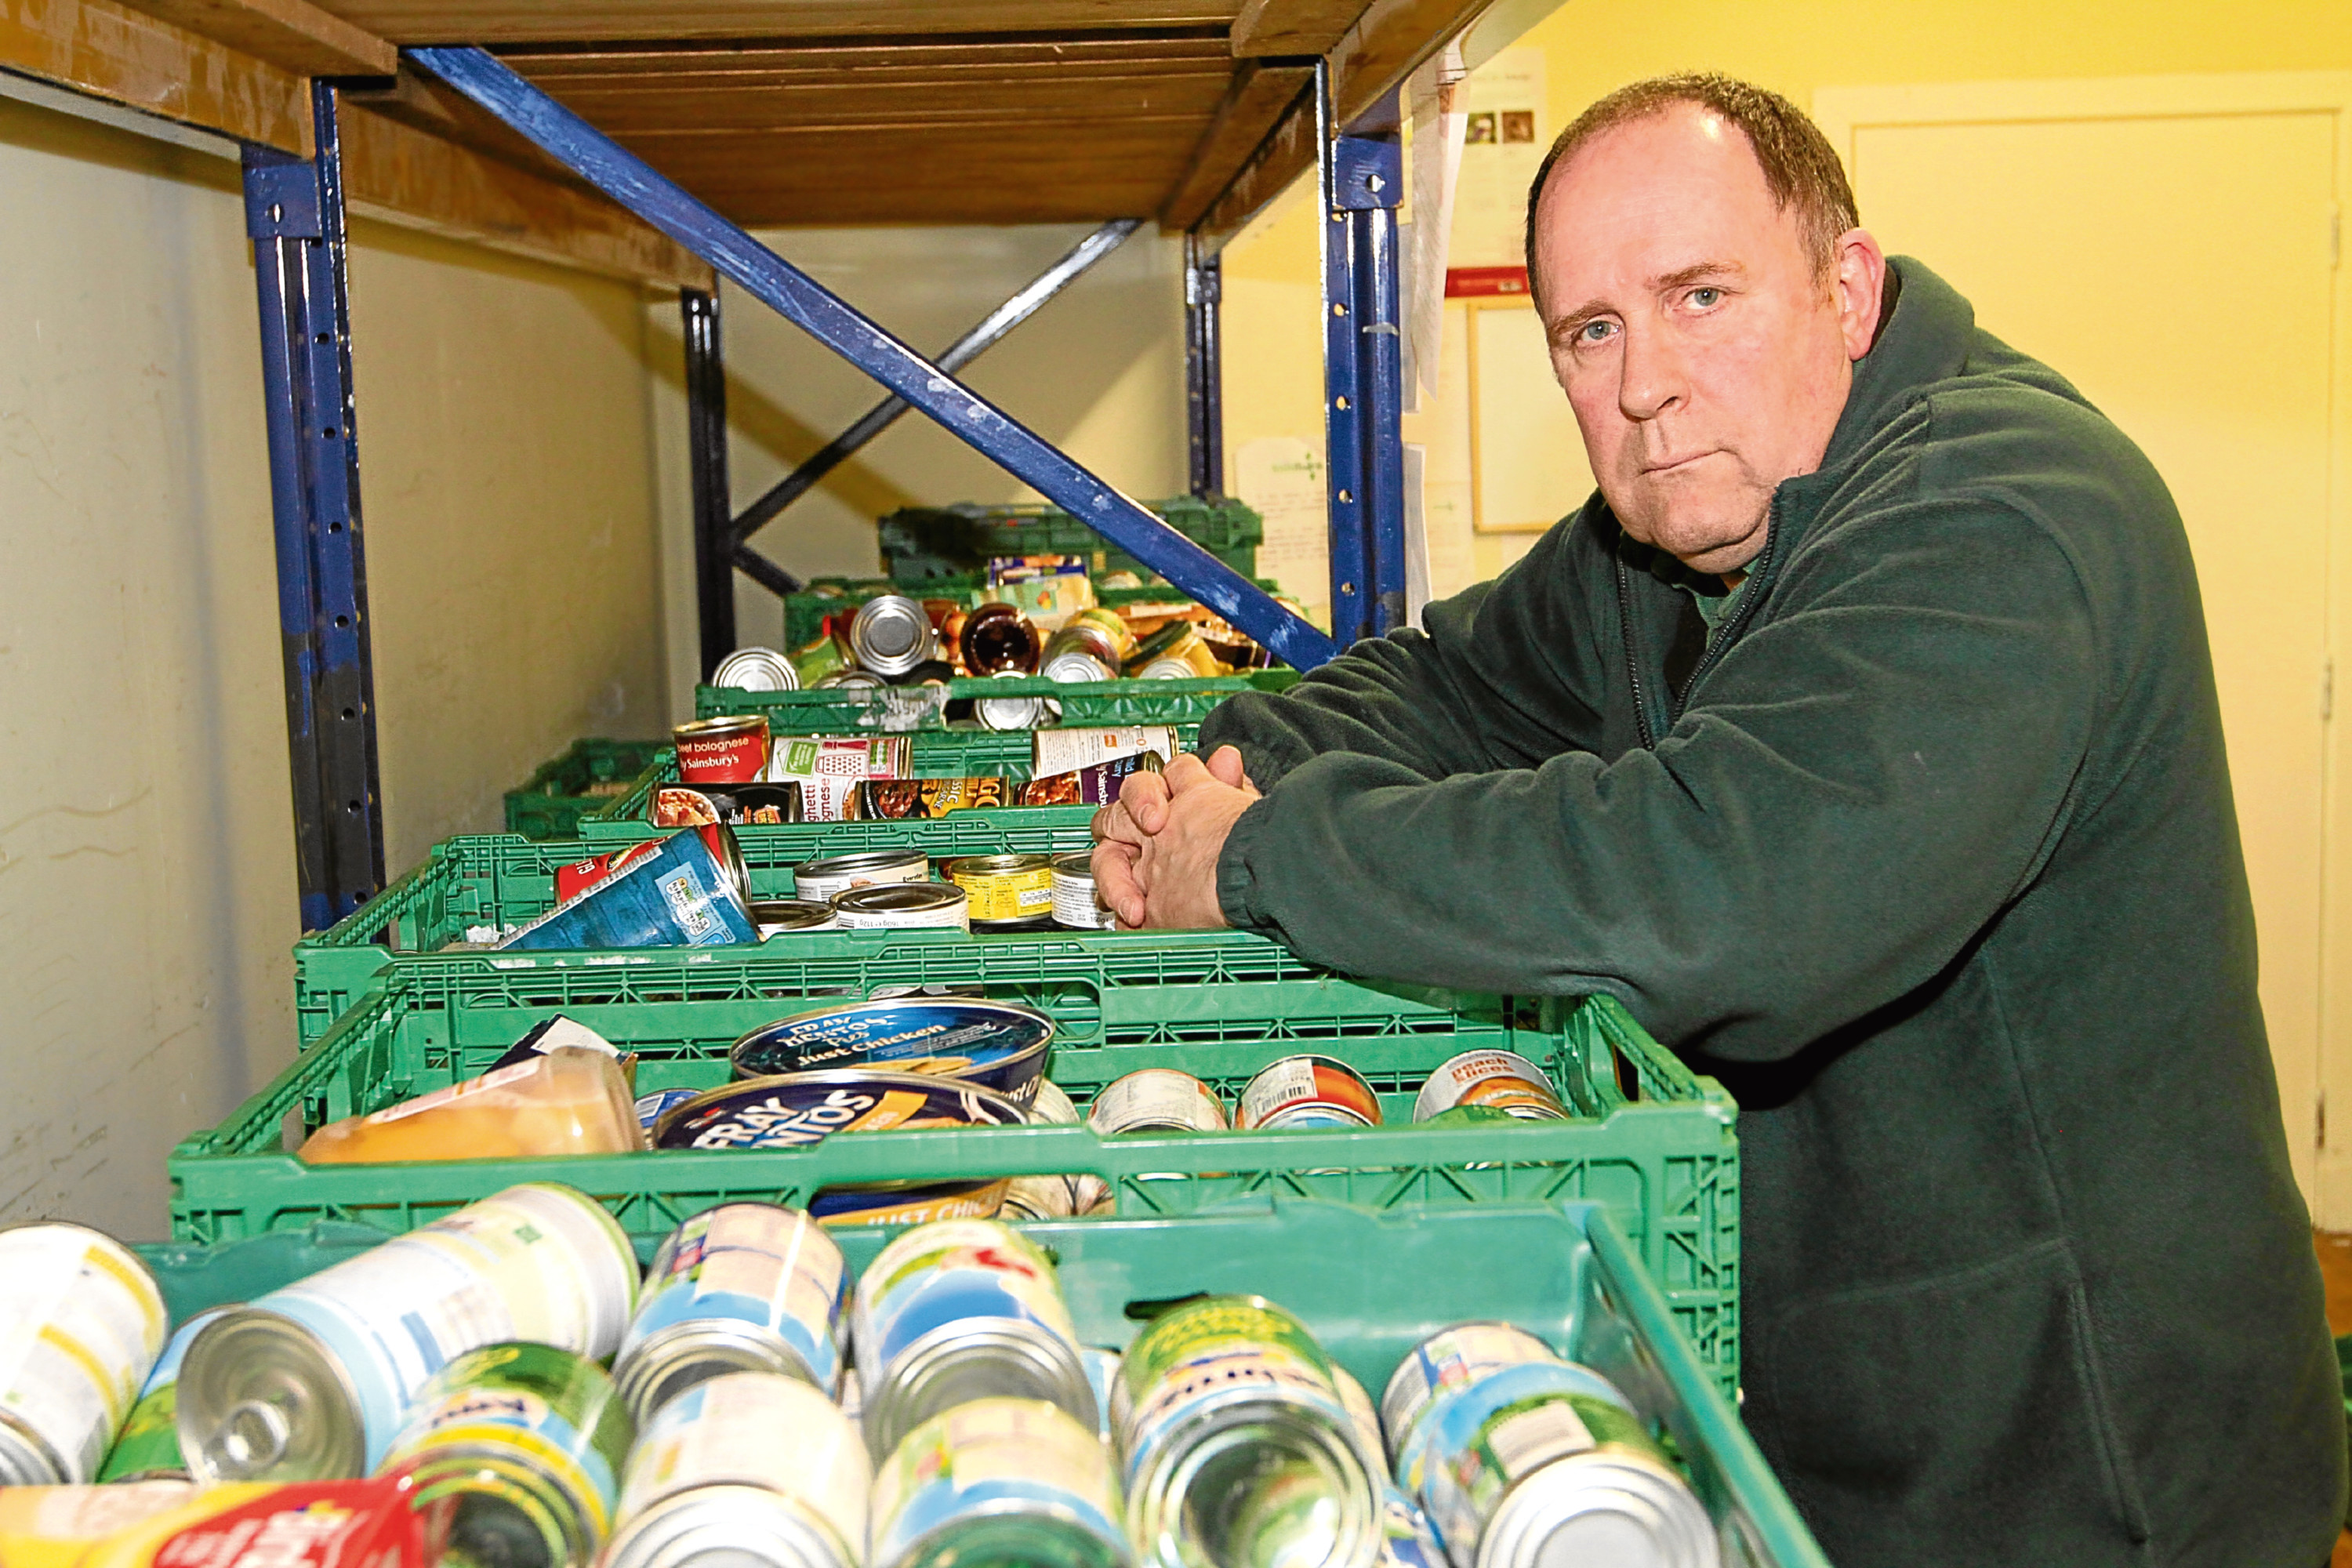 Ken Linton, manager of Dundee Foodbank, says they are always very busy with people dropping in.